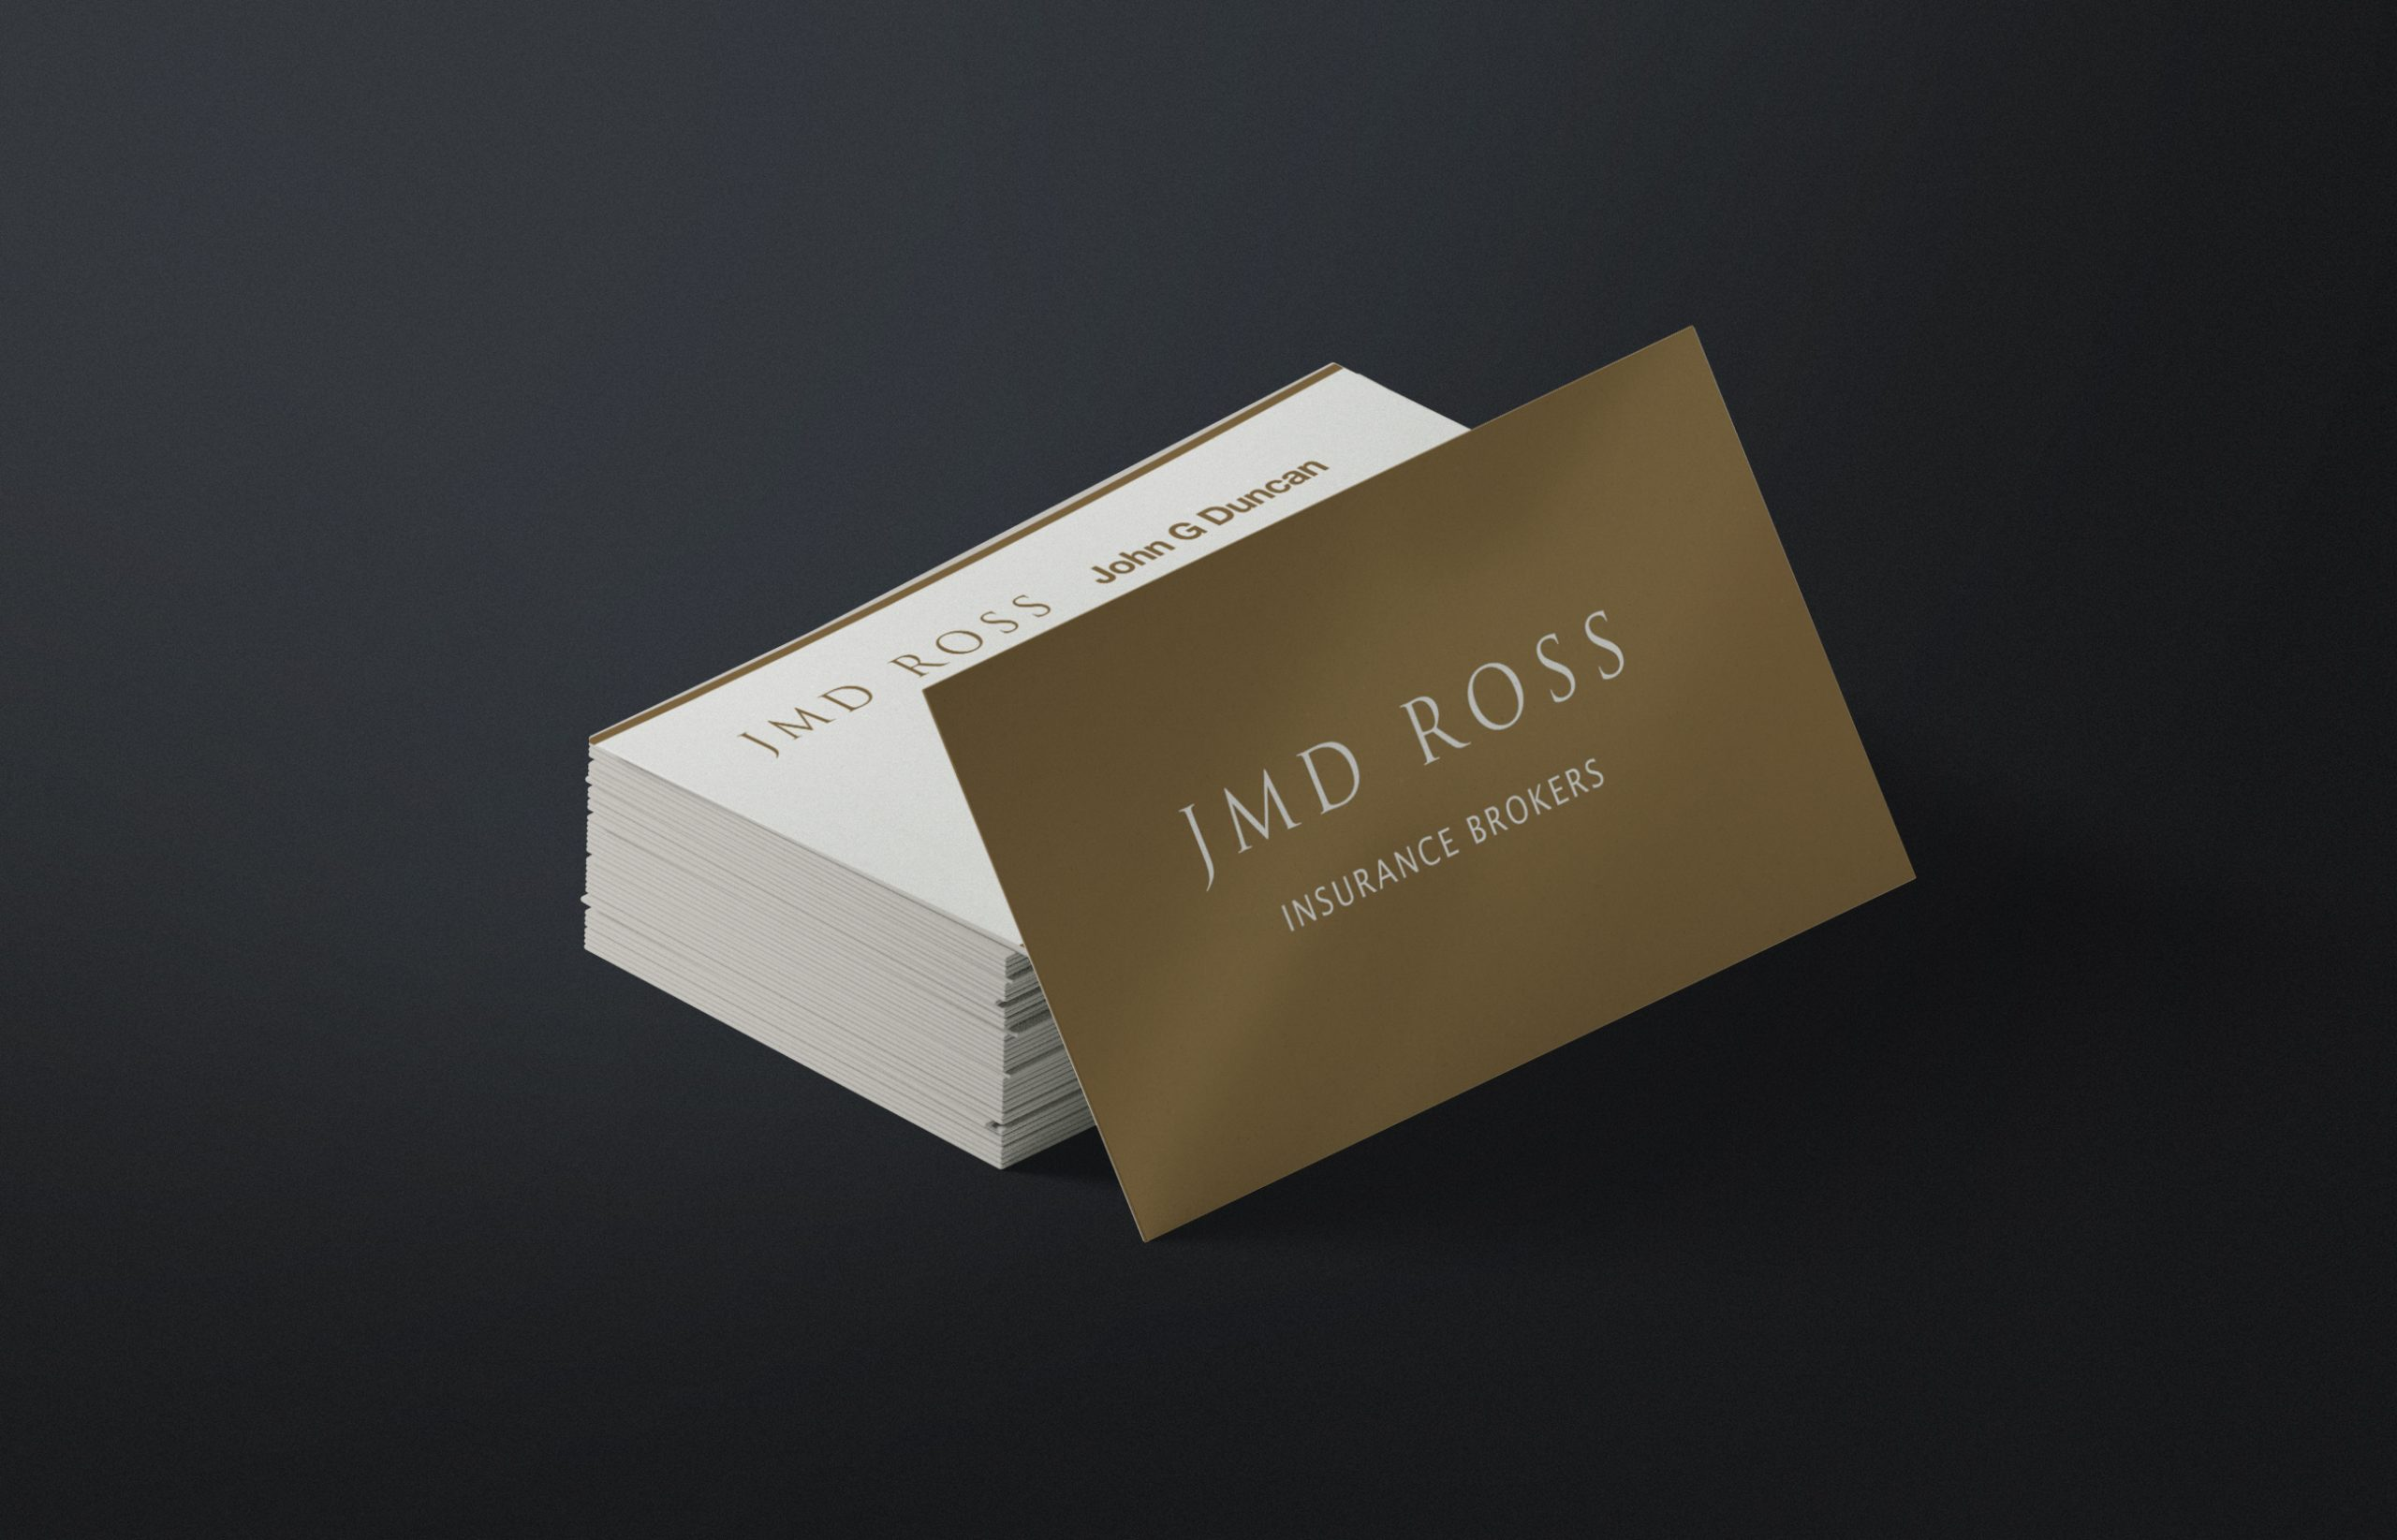 JMD Ross Business Cards